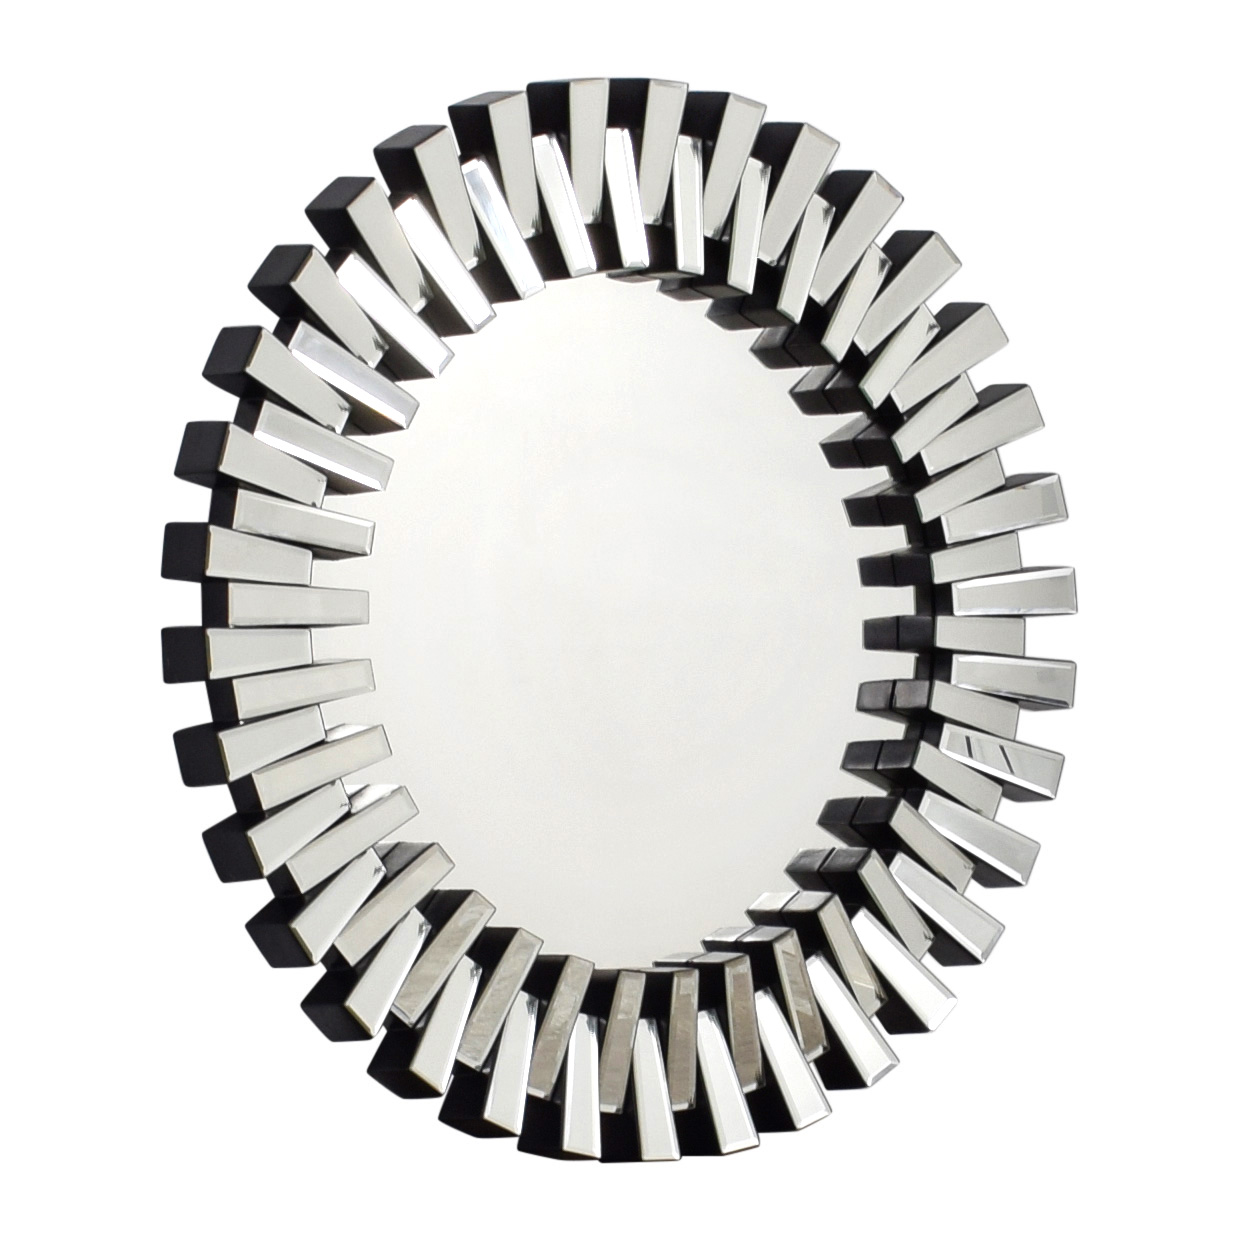 Modani Modani Solaris Wall Mirror Black / Glass